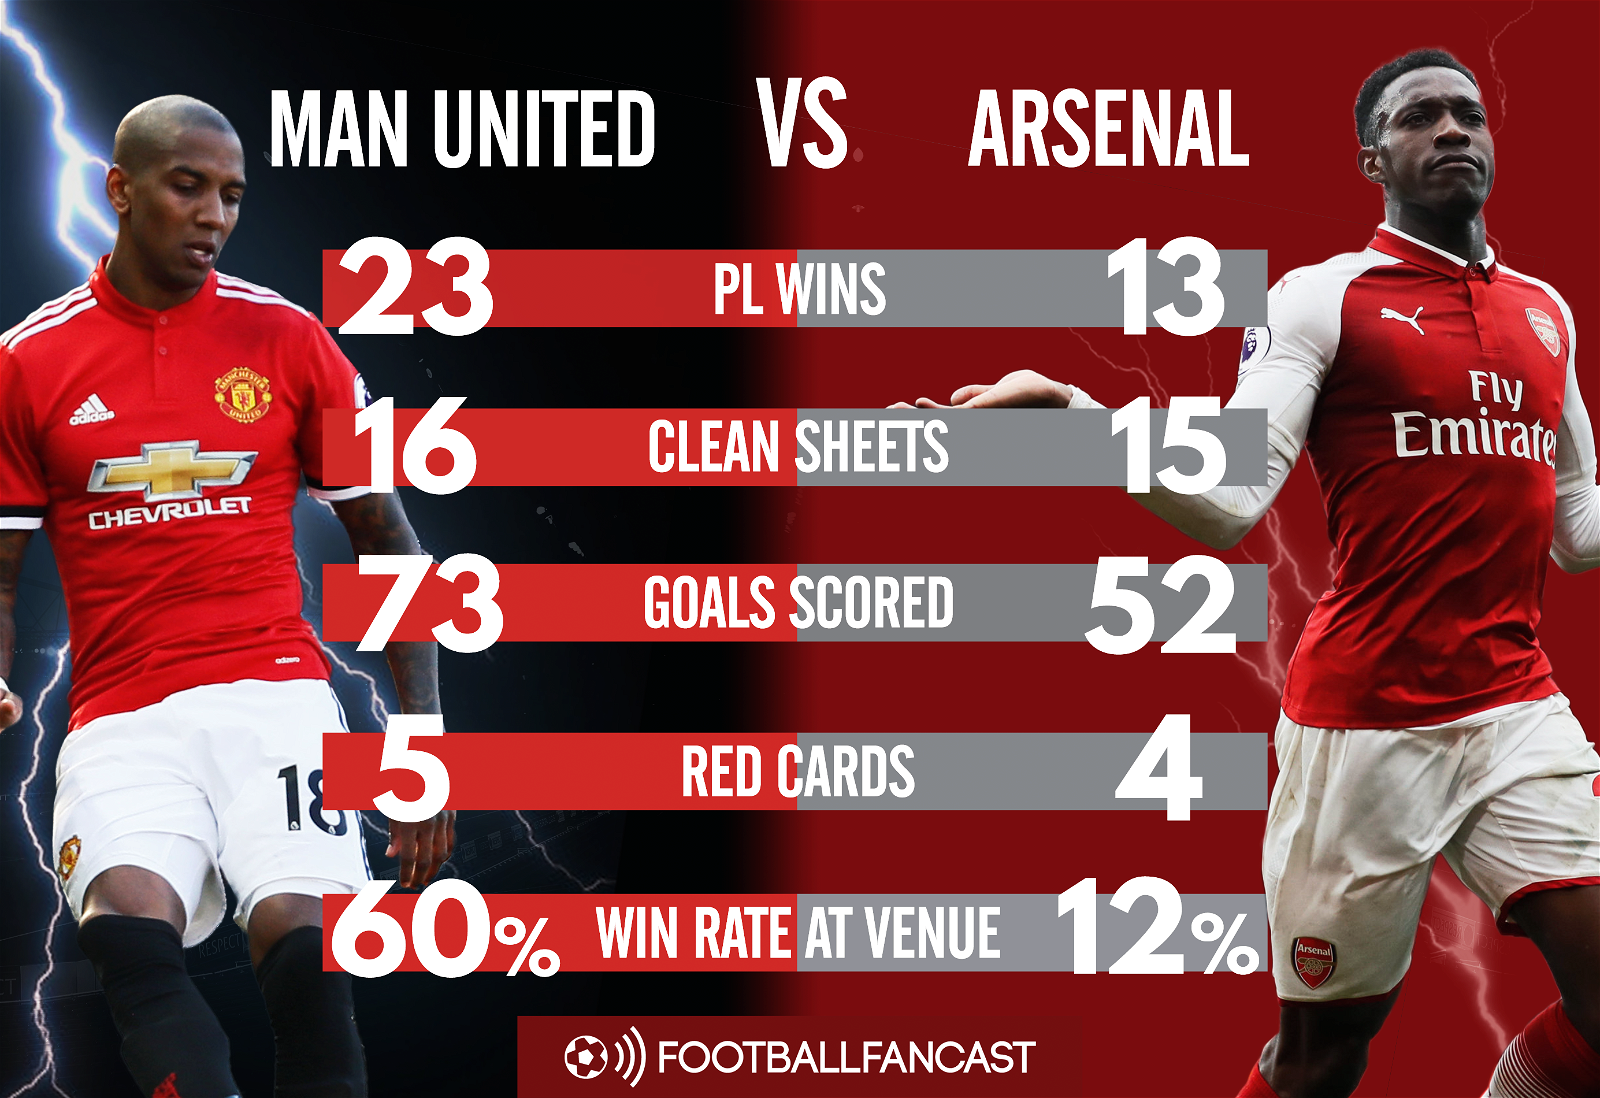 Manchester United vs Arsenal - Head-to-head record